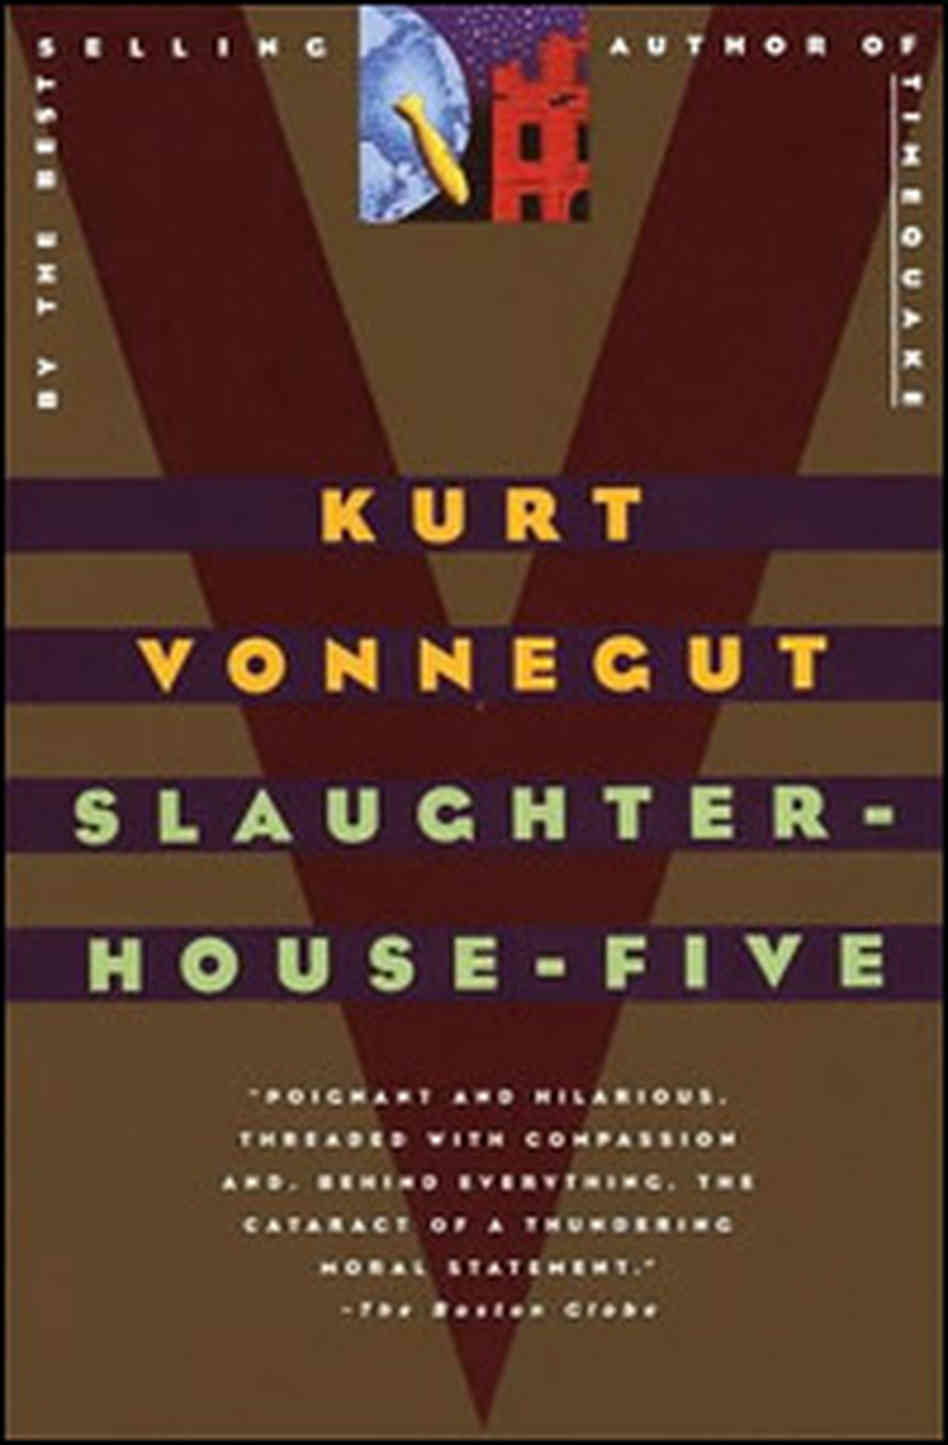 kurt vonnegut essays slaughterhouse five essay production merchandiser cover letter king of lost ee b e deb bb e a f cf